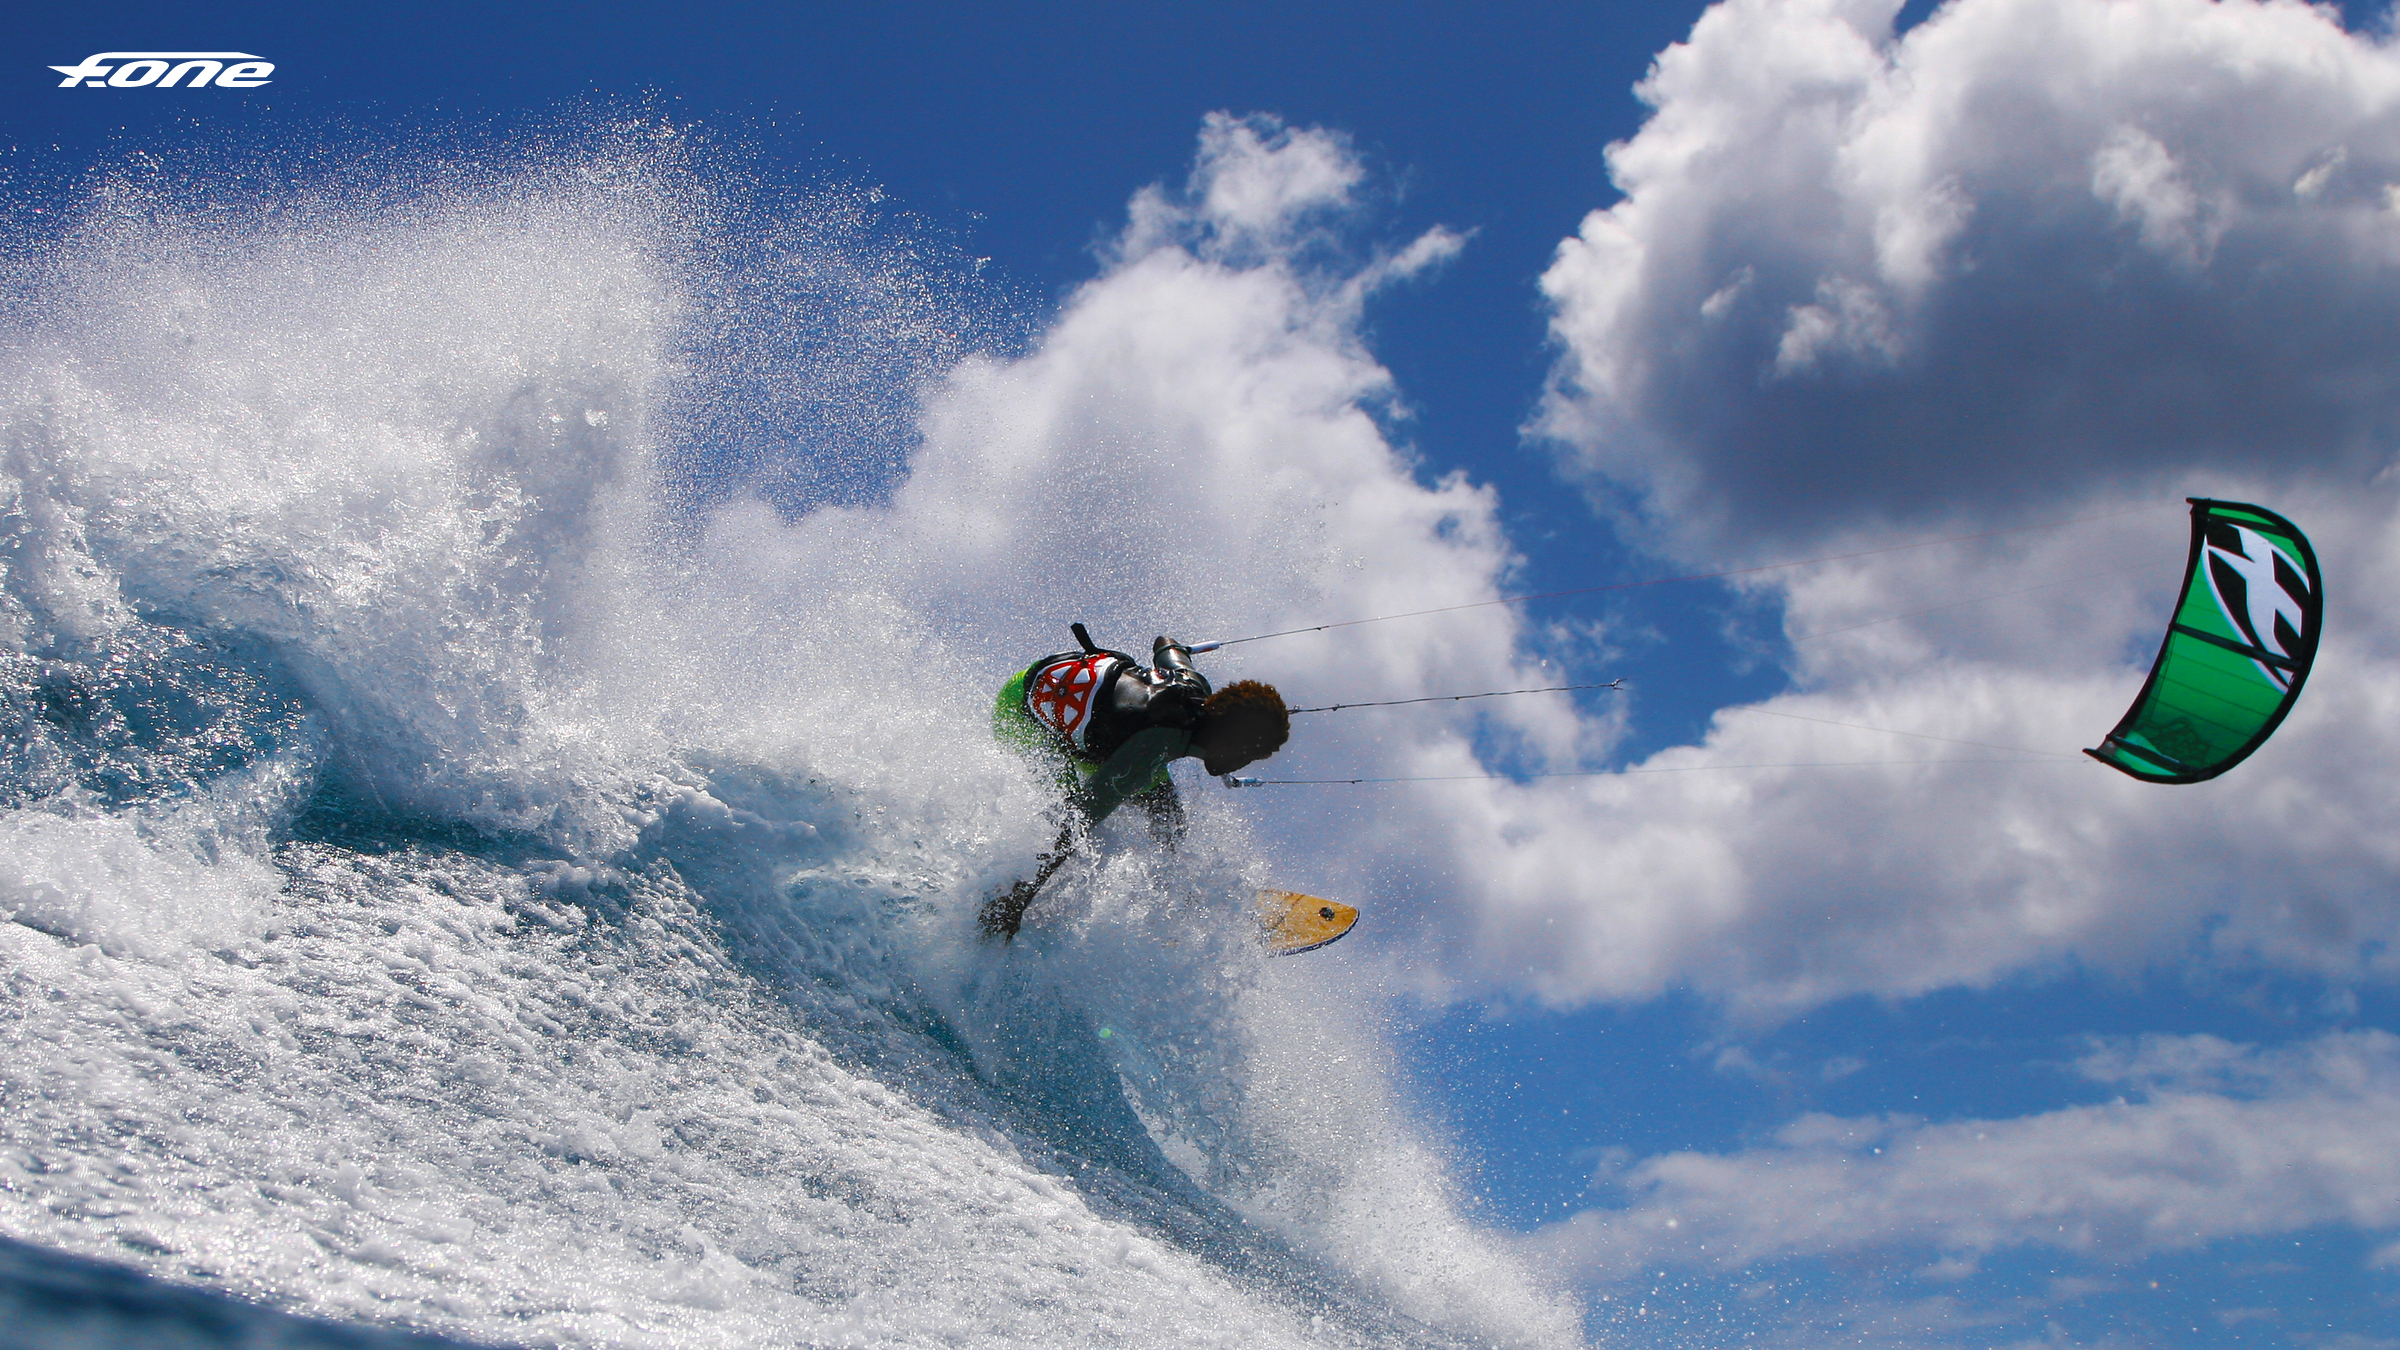 kitesurf wallpaper image - Backside shred by Mitu Monteiro off a wave and on the F-One Bandit kite. - in resolution: High Definition - HD 16:9 2400 X 1350